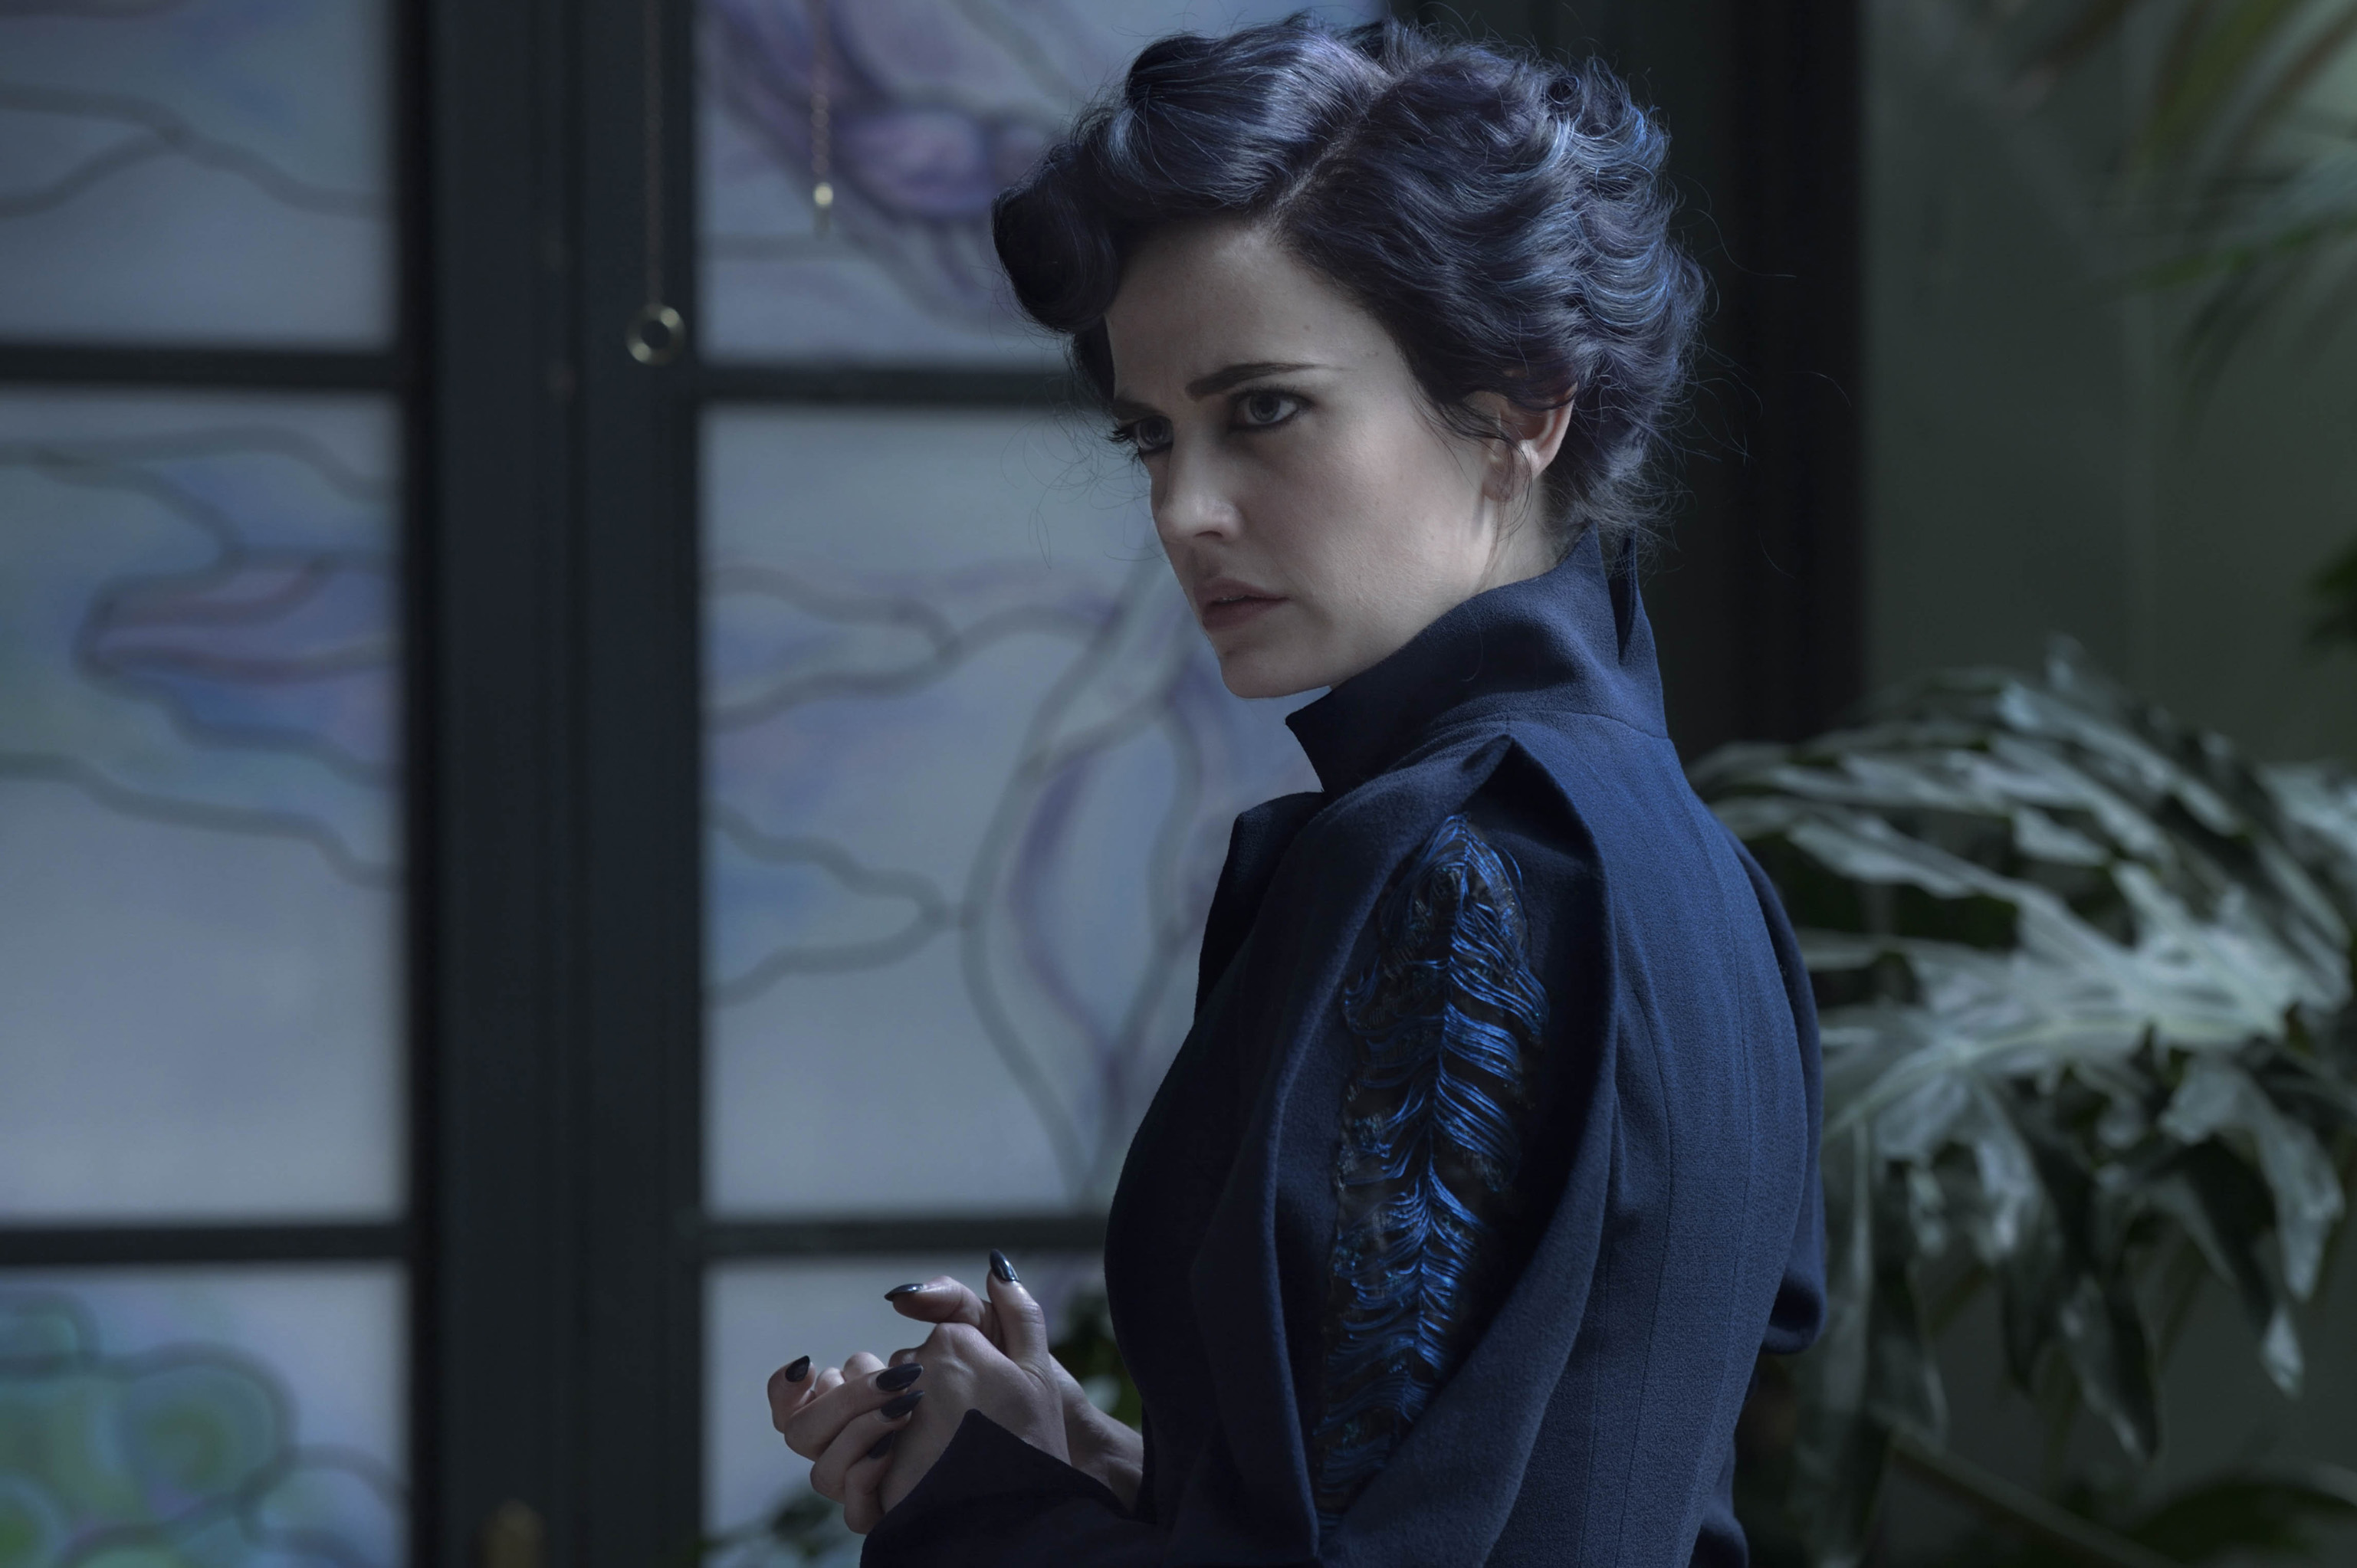 Eva Green portrays Miss Peregrine, who oversees a magical place that is threatened by powerful enemies. Photo Credit: Jay Maidment.